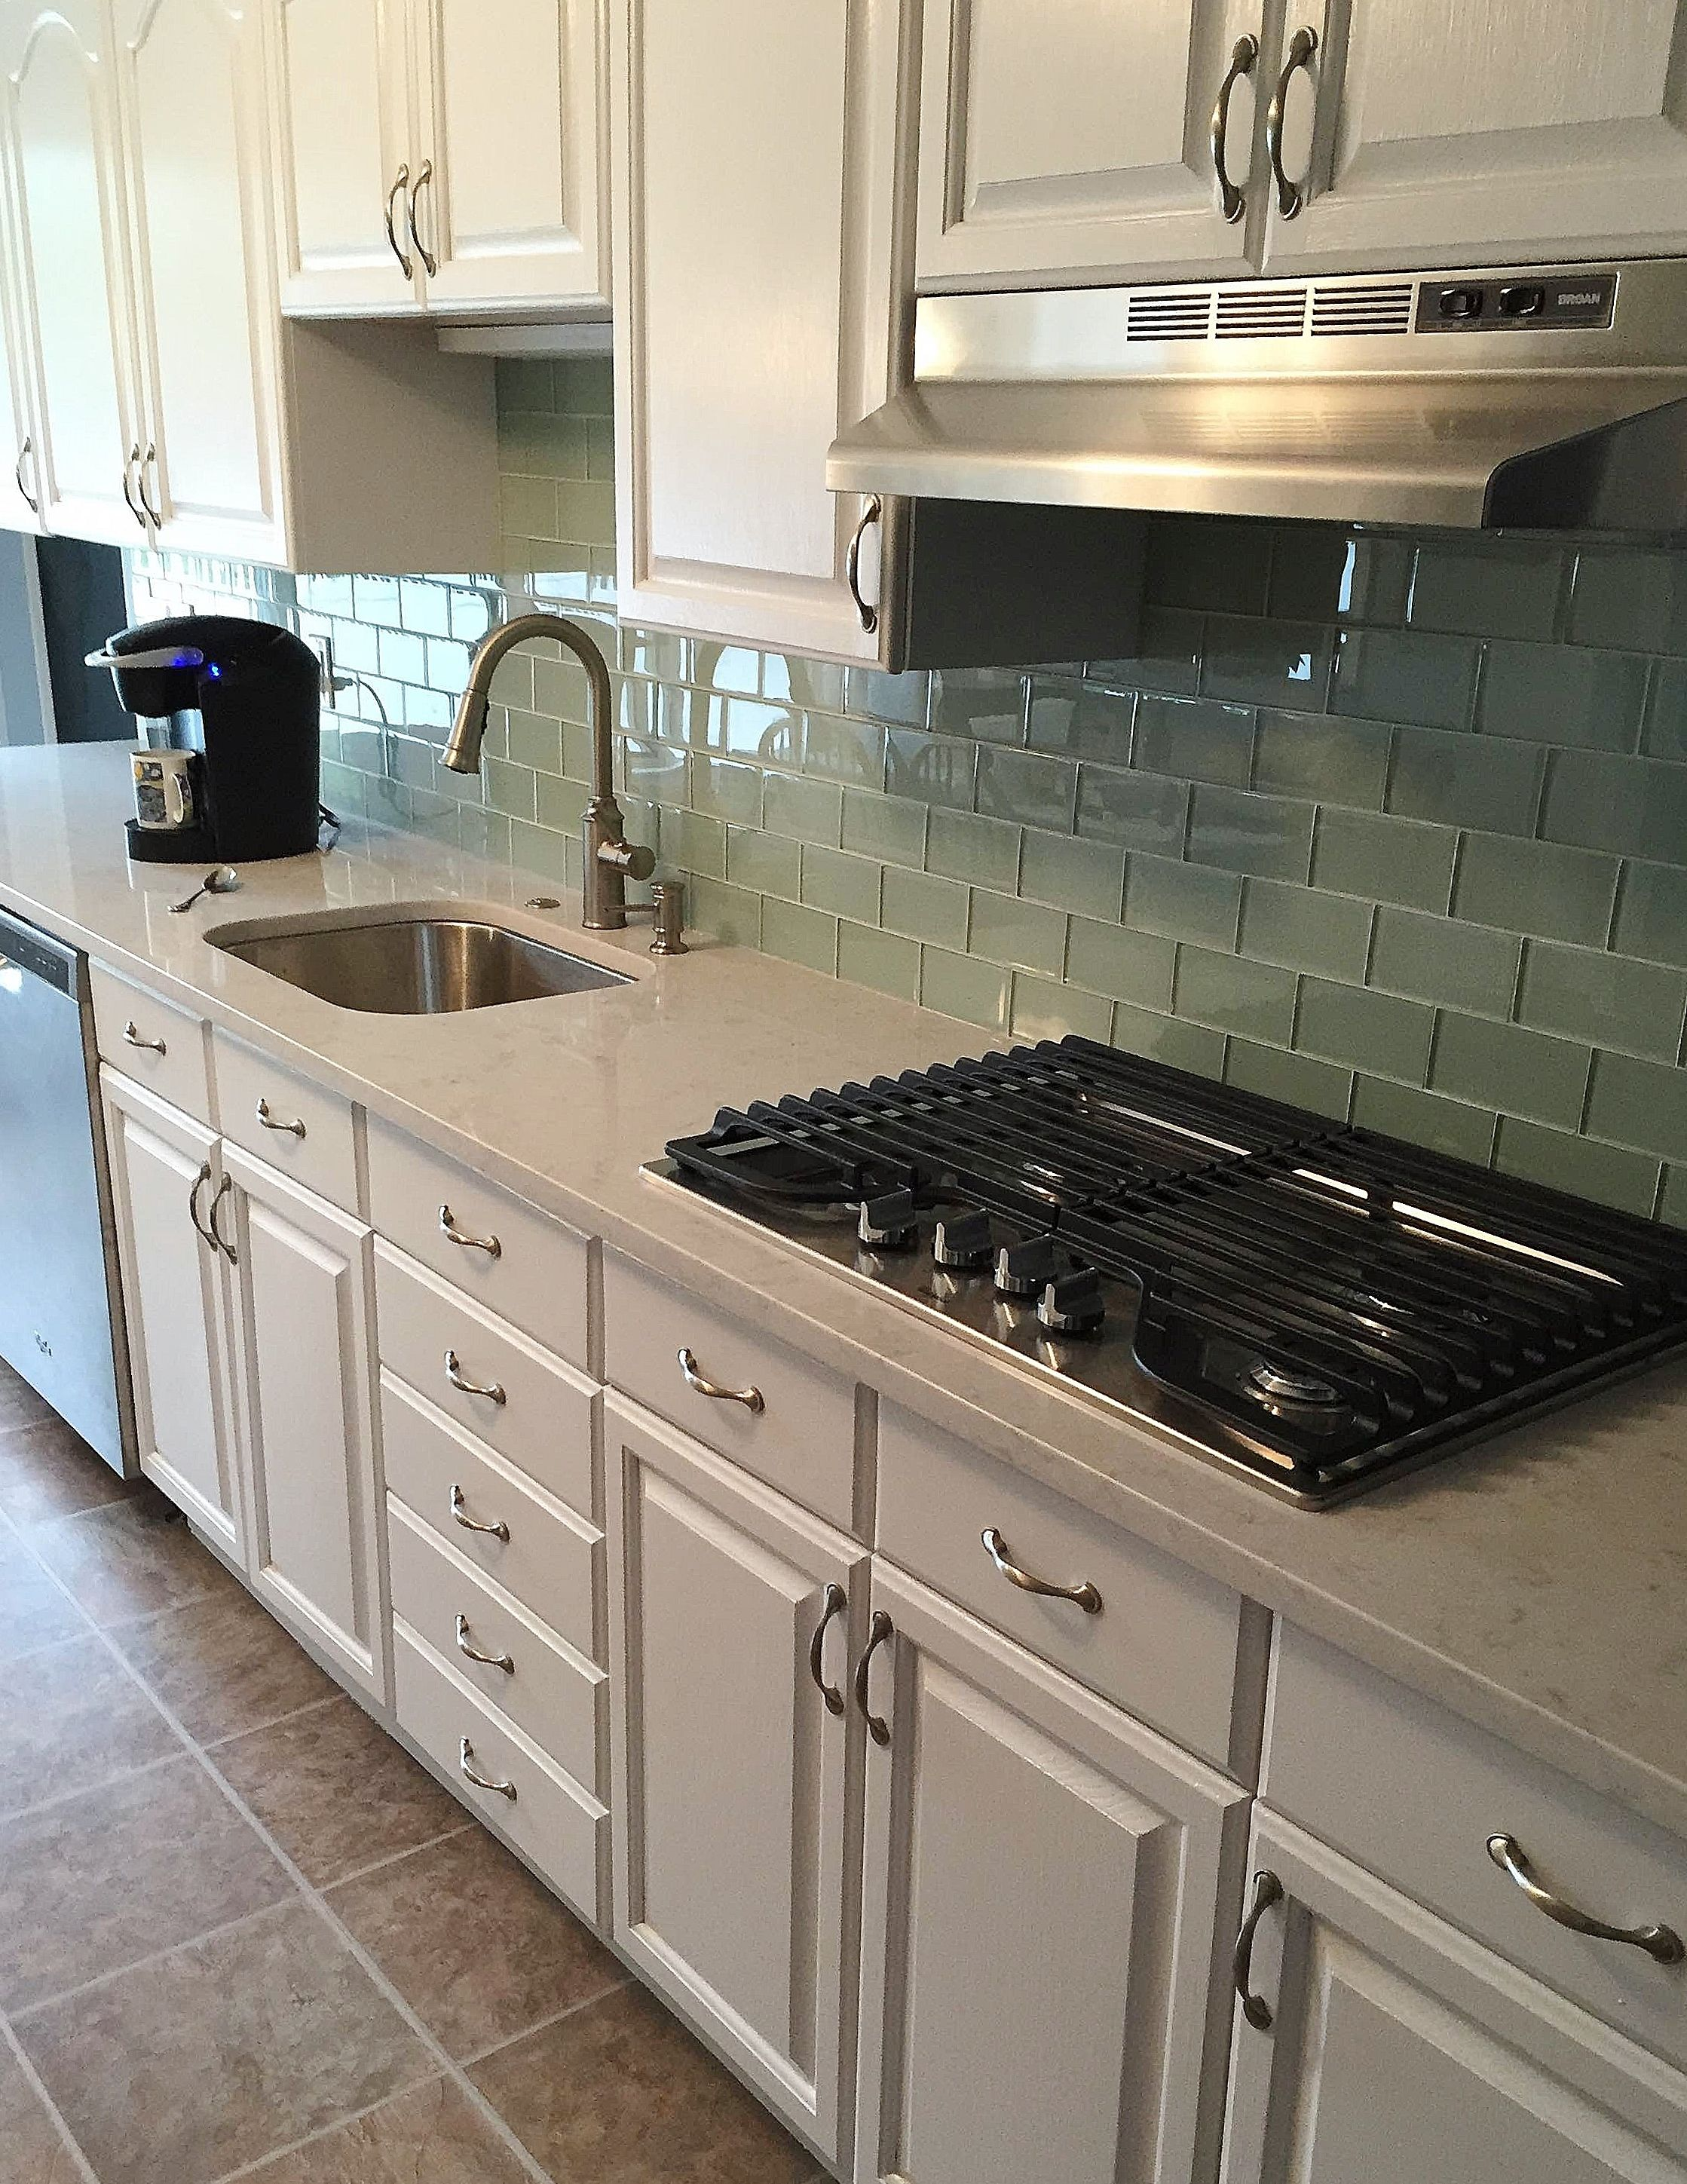 What Is Quartz Countertops Silestone Lagoon Quartz Countertops With A Soft Blue Glass Tile